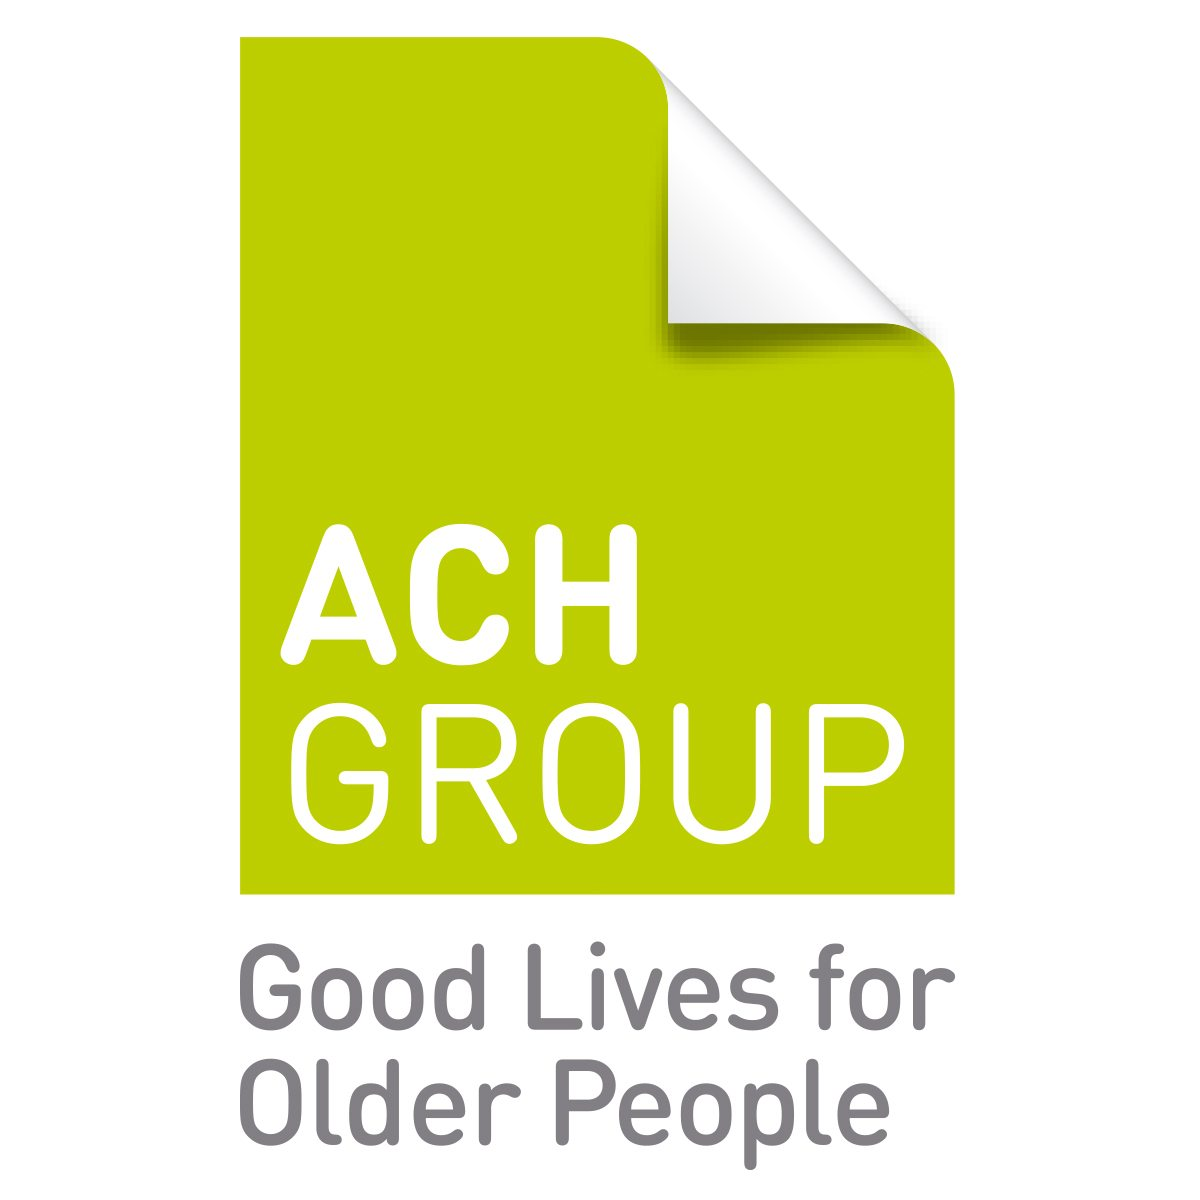 Good Lives for Older People | Retirement Living | ACH Group